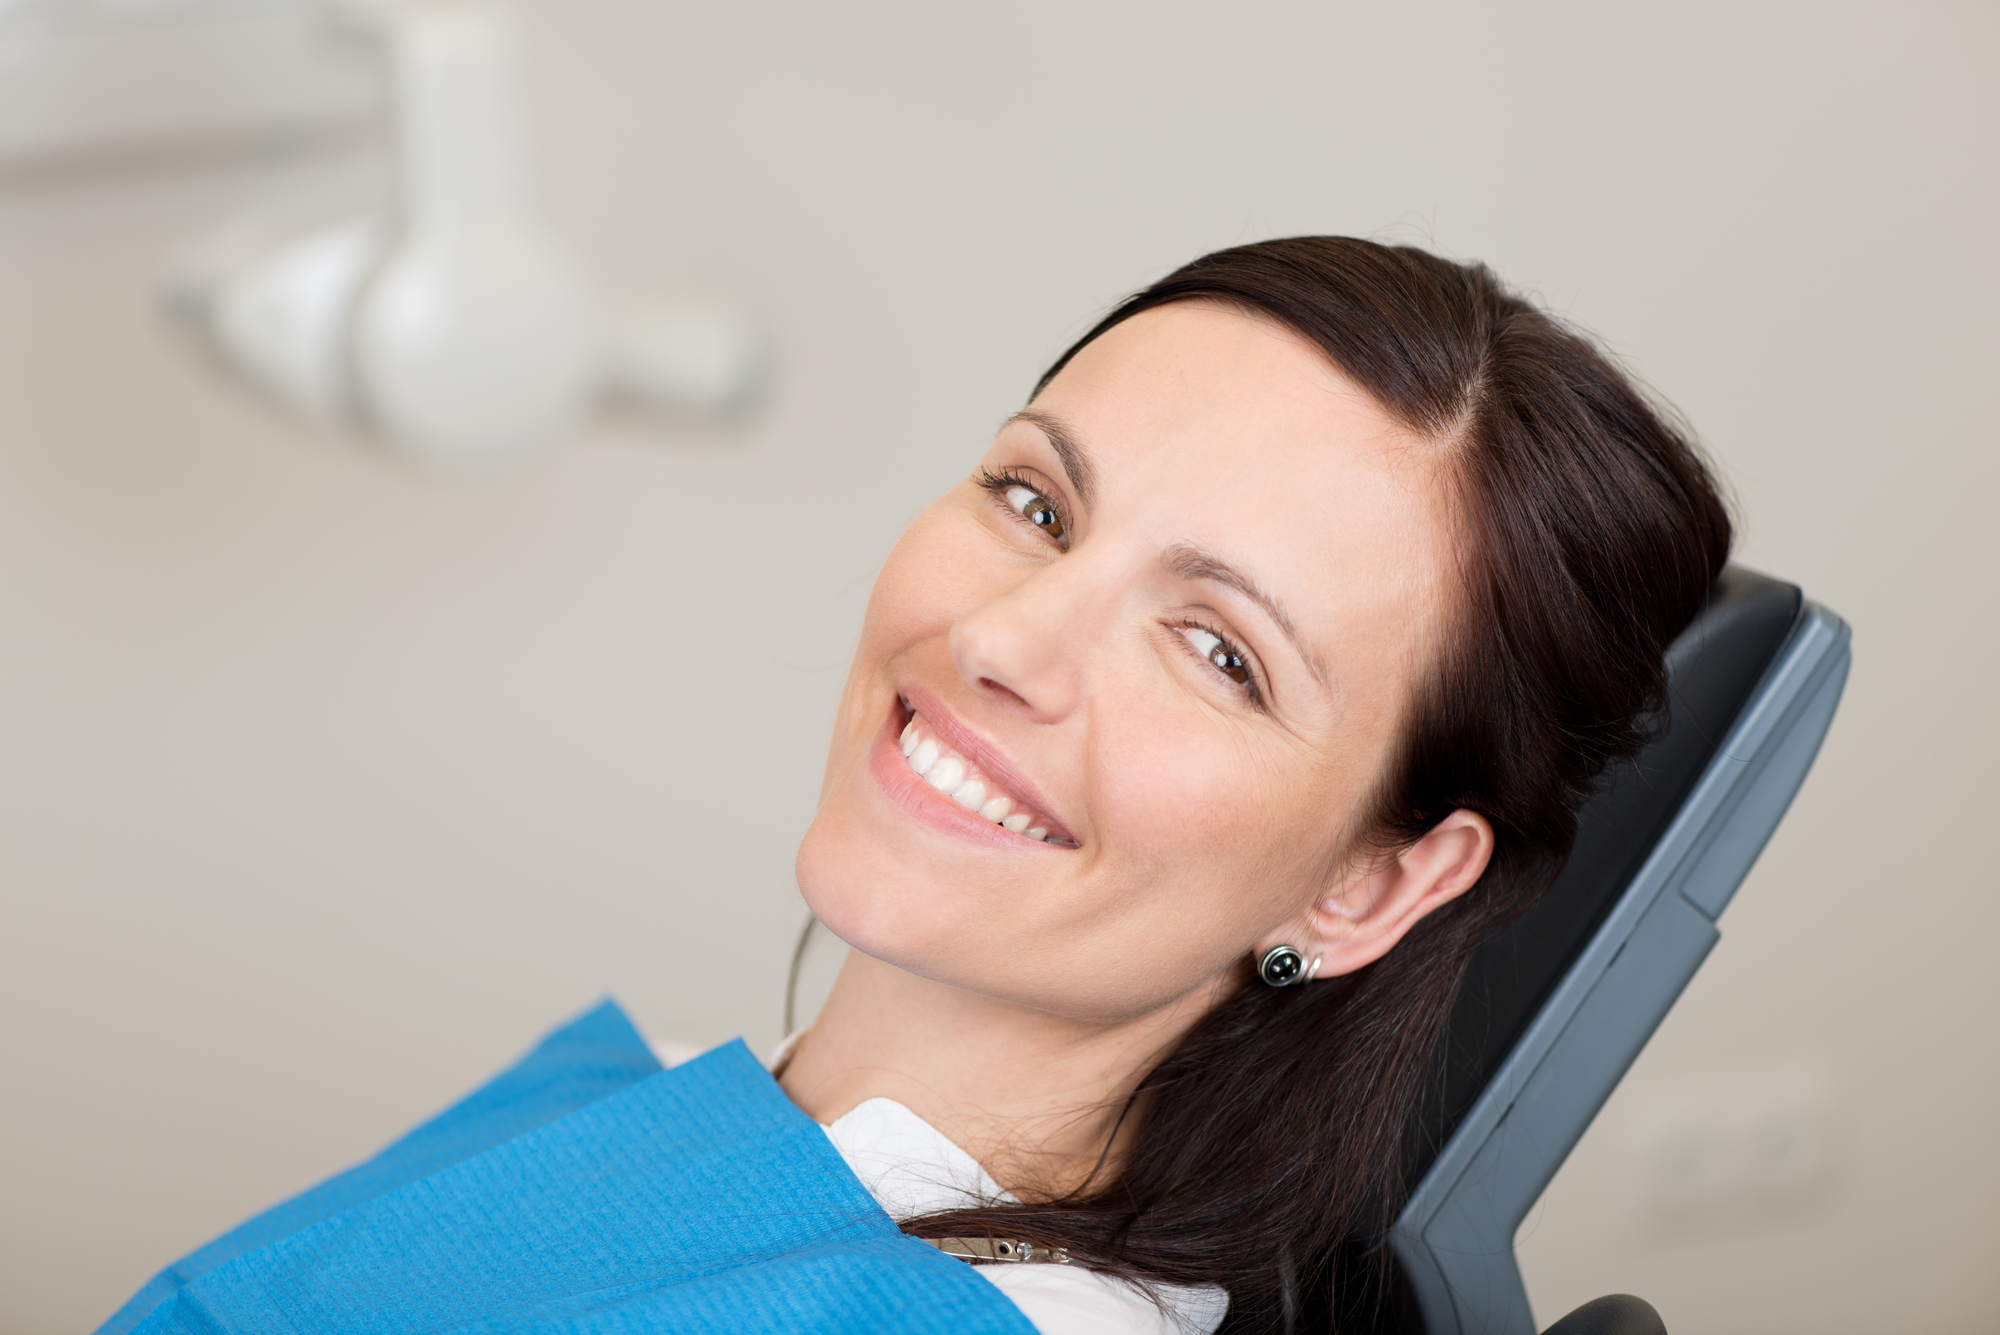 who offers the best hydrafacial miami?